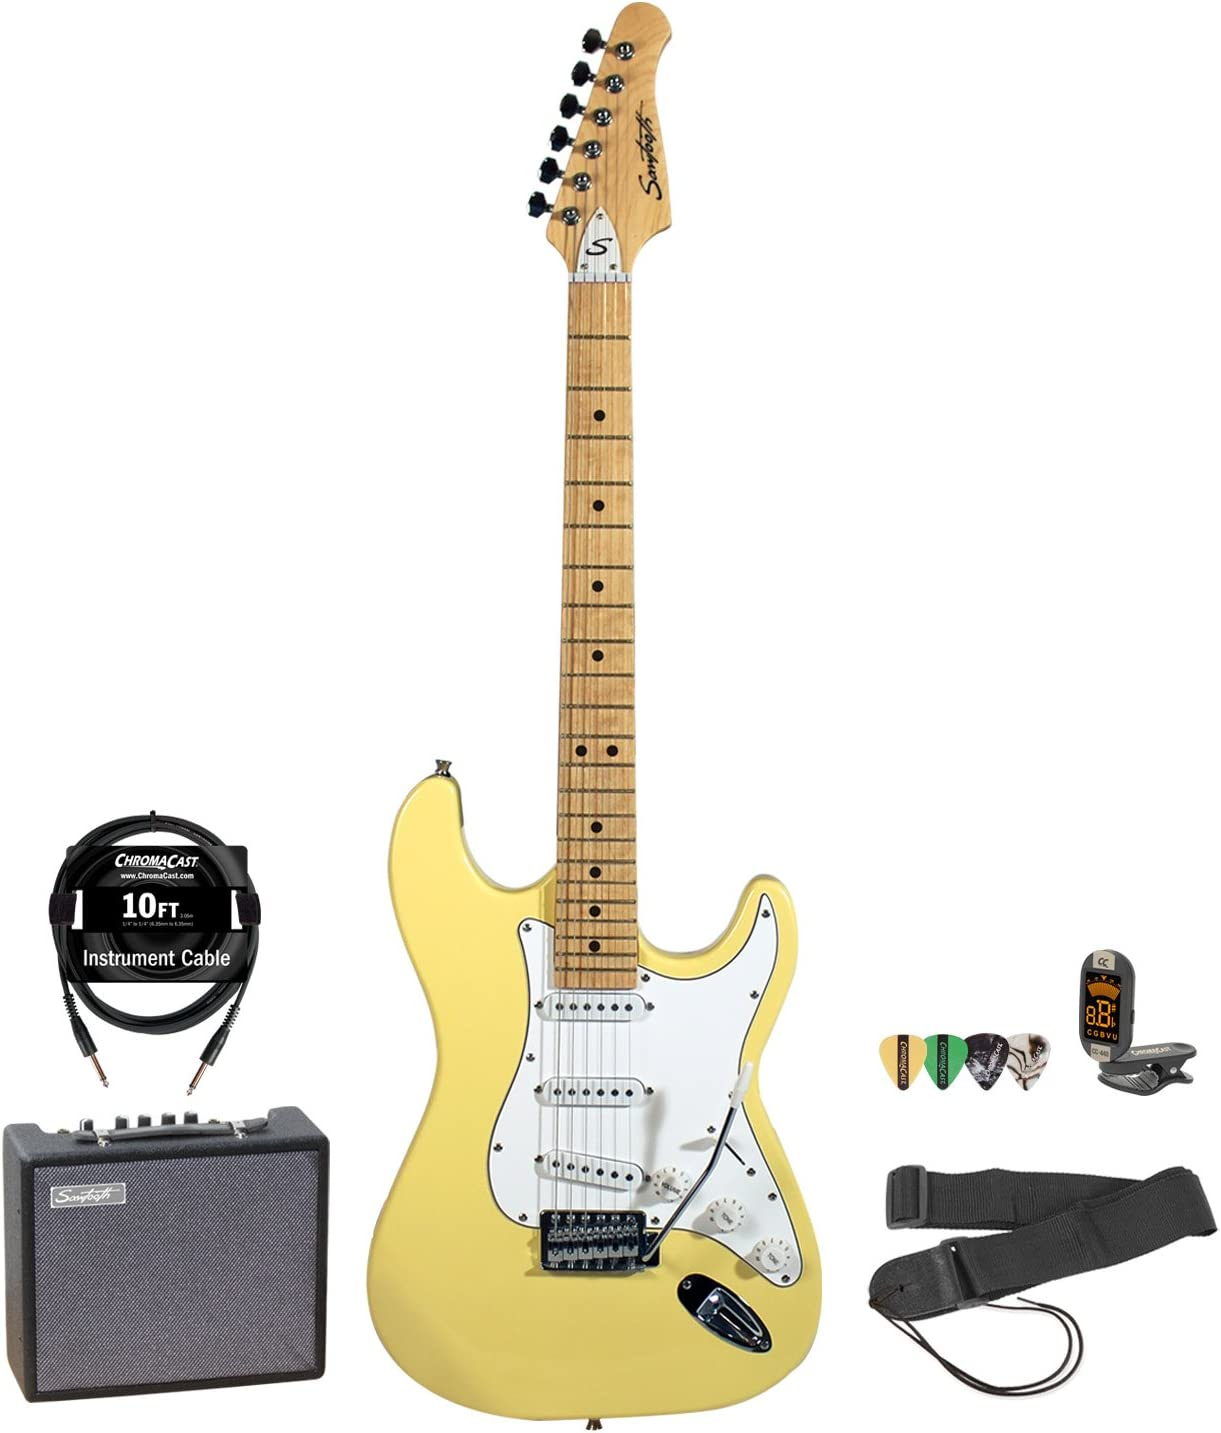 Sawtooth Citron Vanilla Cream Electric Guitar w/White Pickguard - Includes: Accessories & 10-Watt Amp